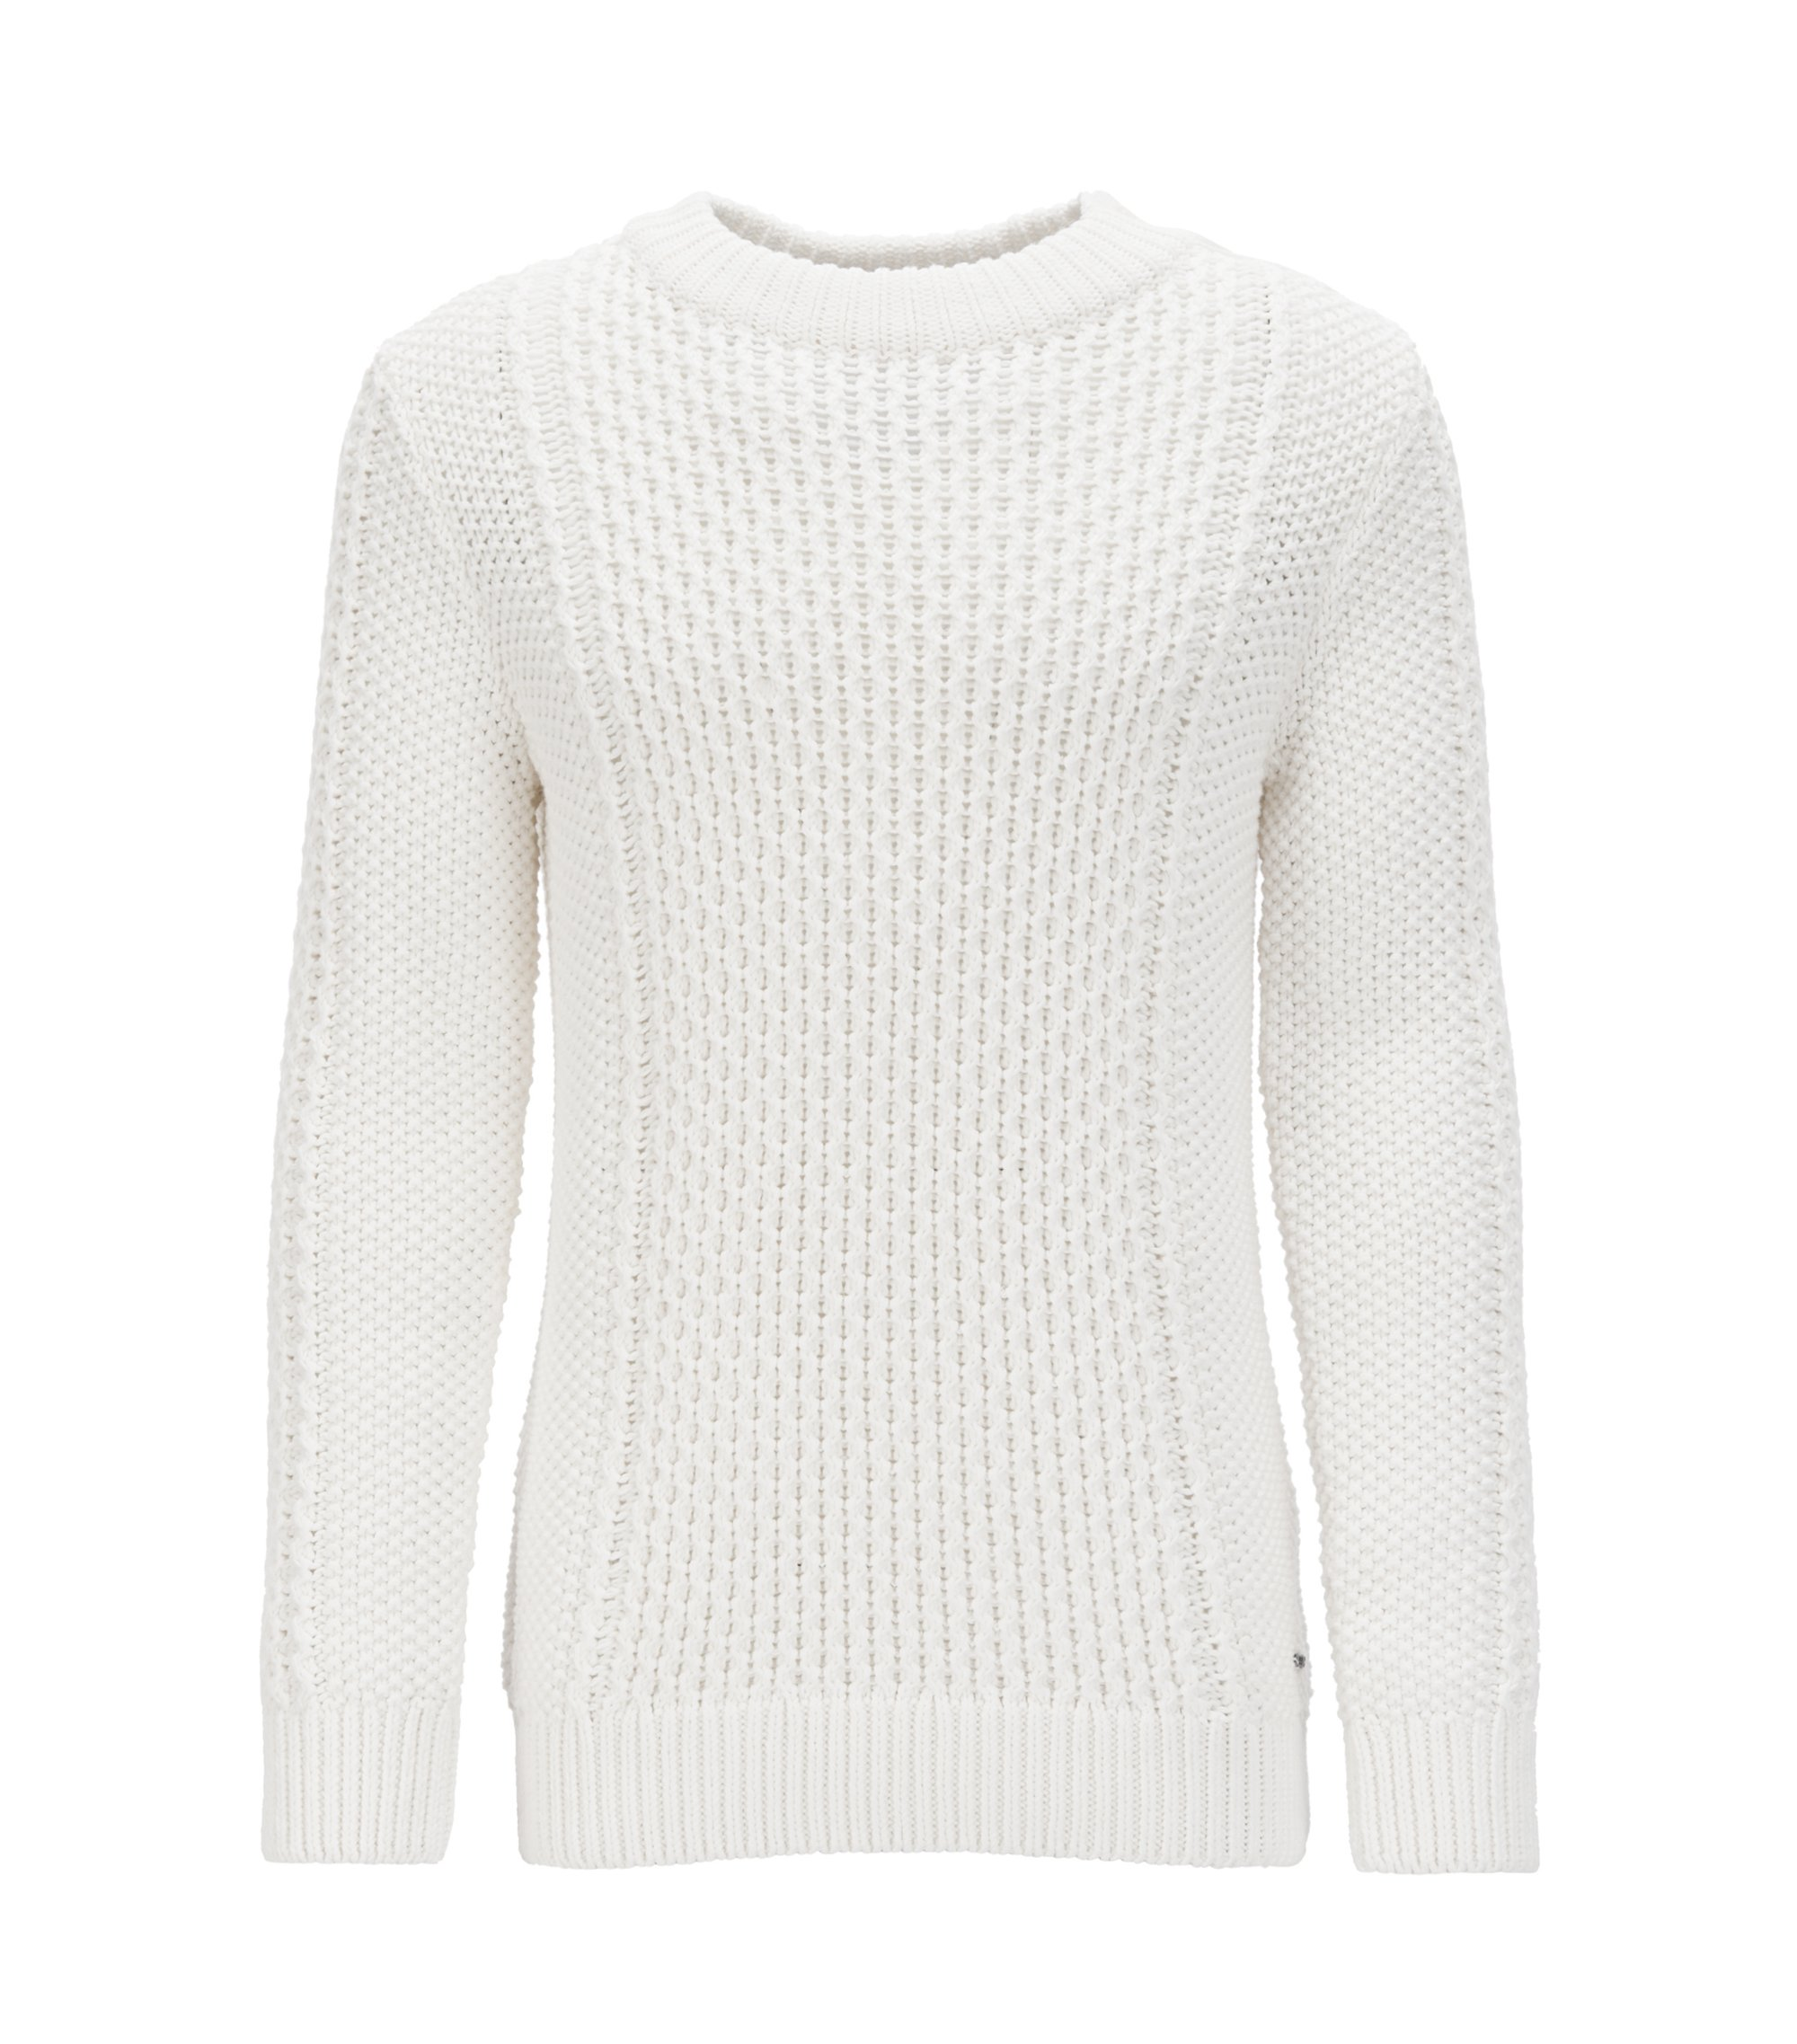 Cotton Blend Chunky Sweater | Delmonte, White